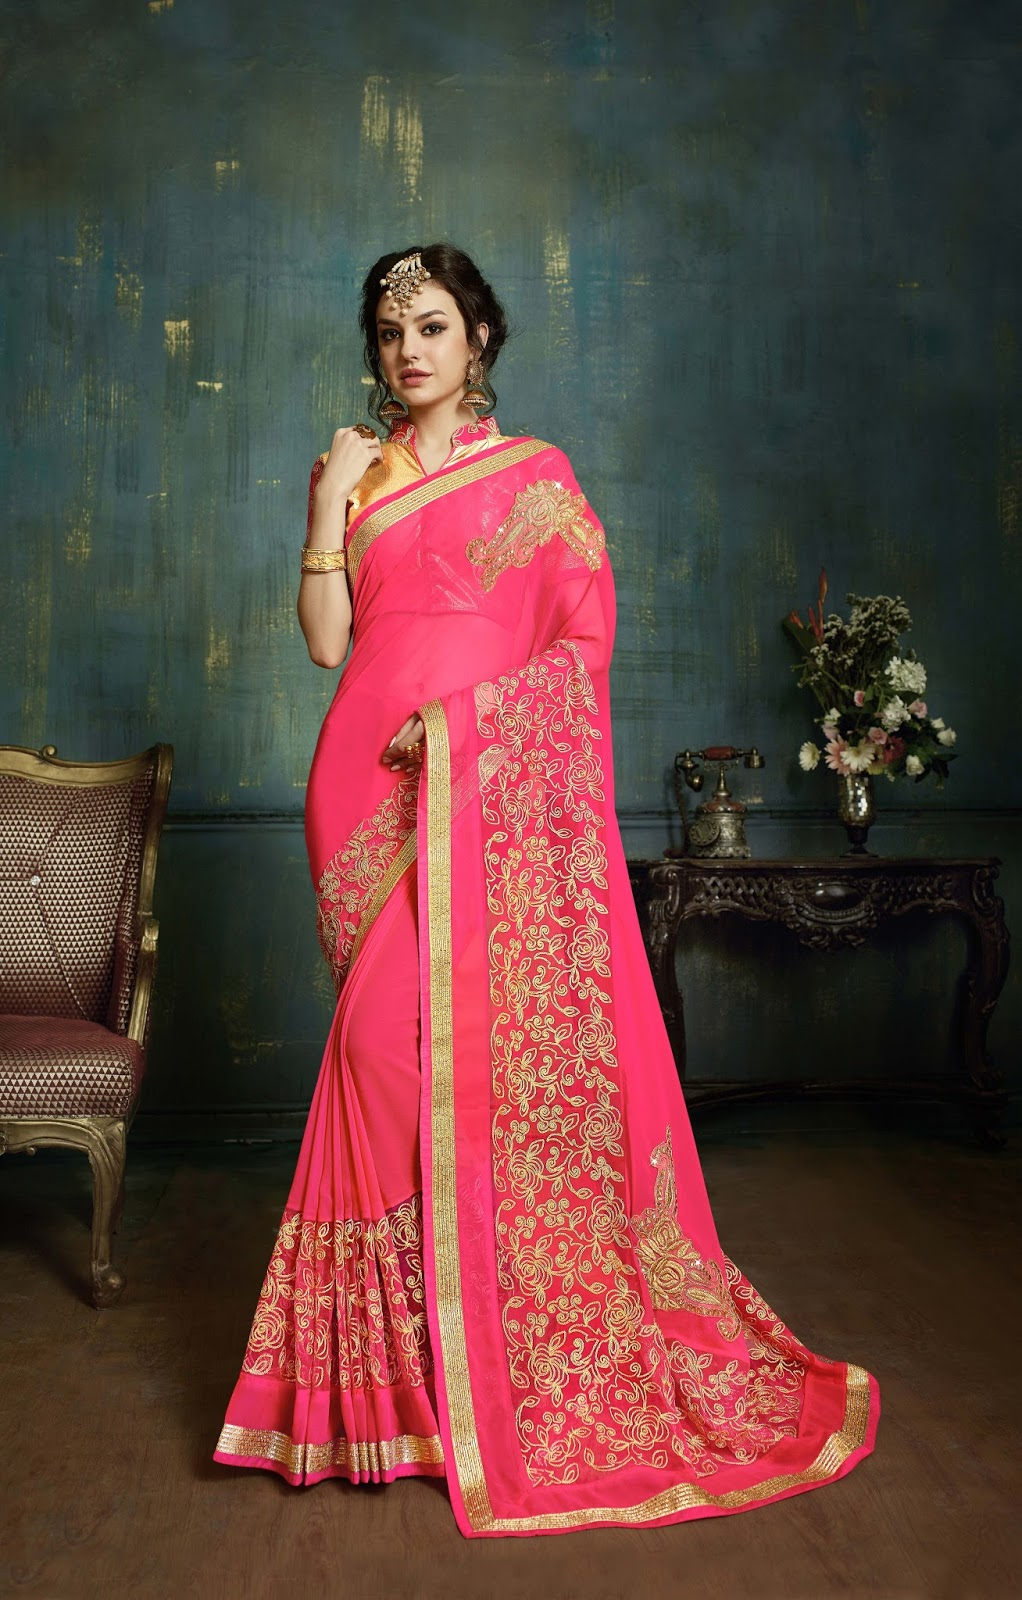 Firangi 4 – Fancy And Stylish Rish Look Designer Saree